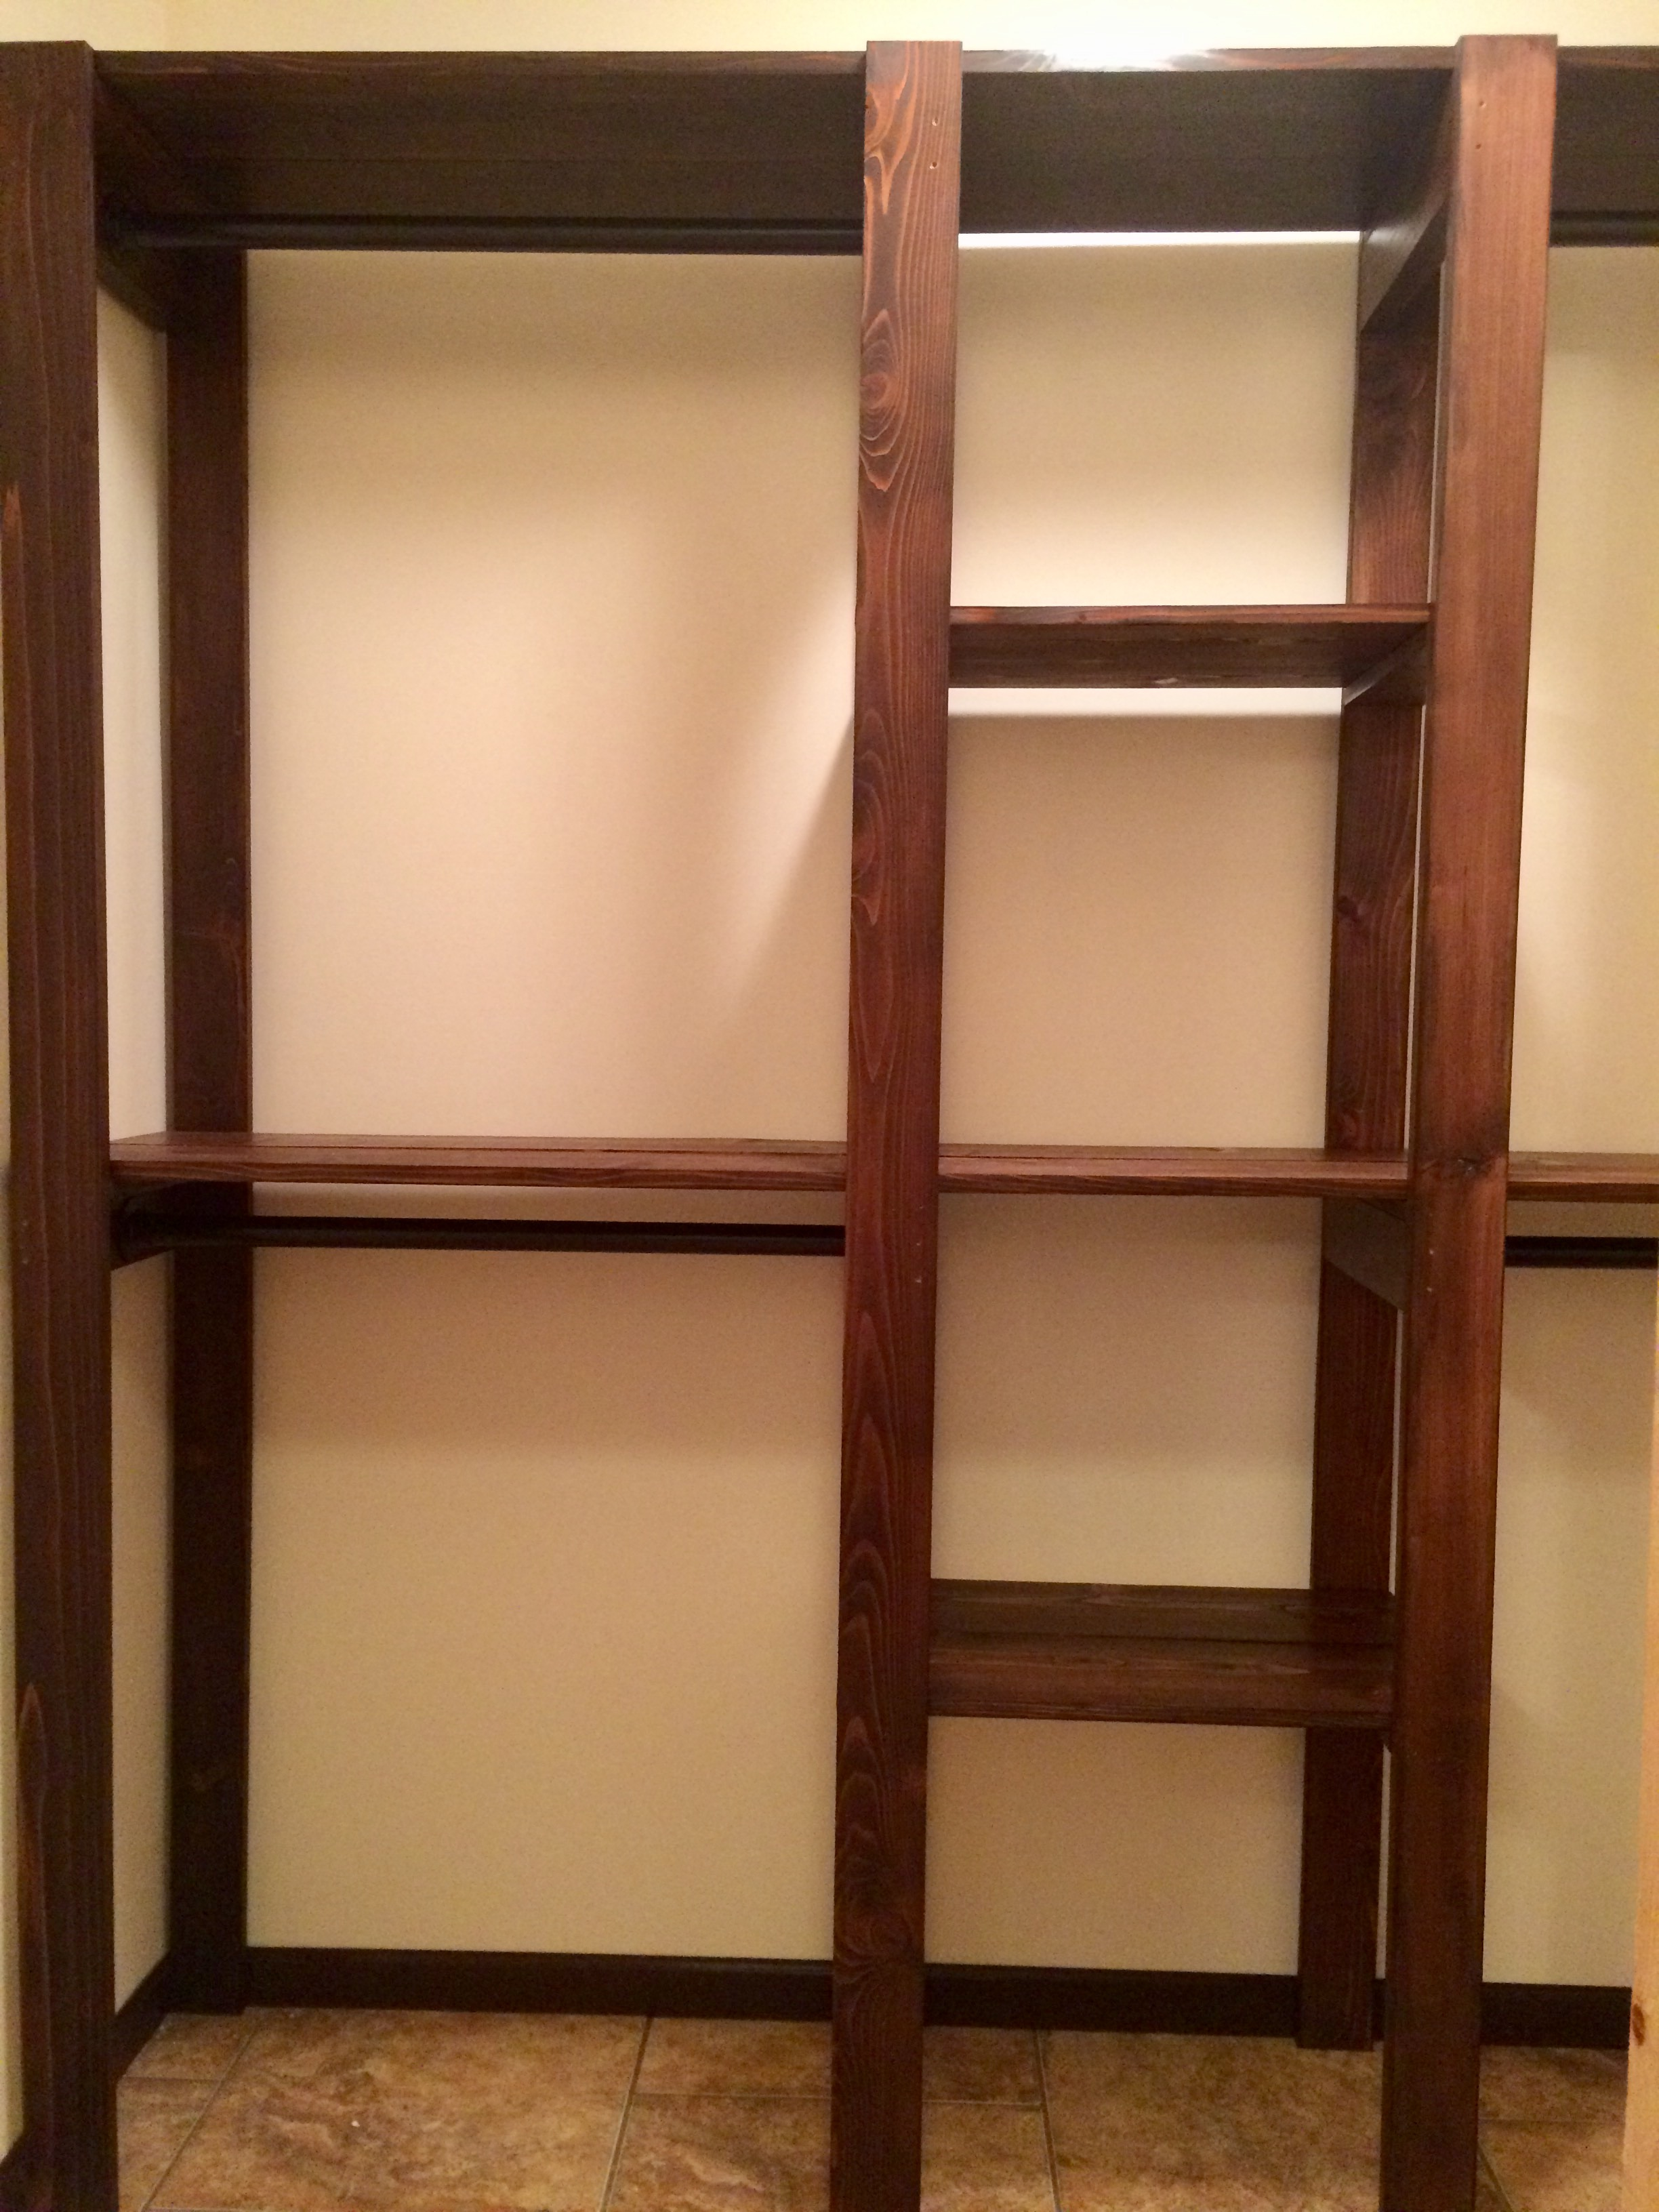 Ana White Industrial Master Closet Diy Projects